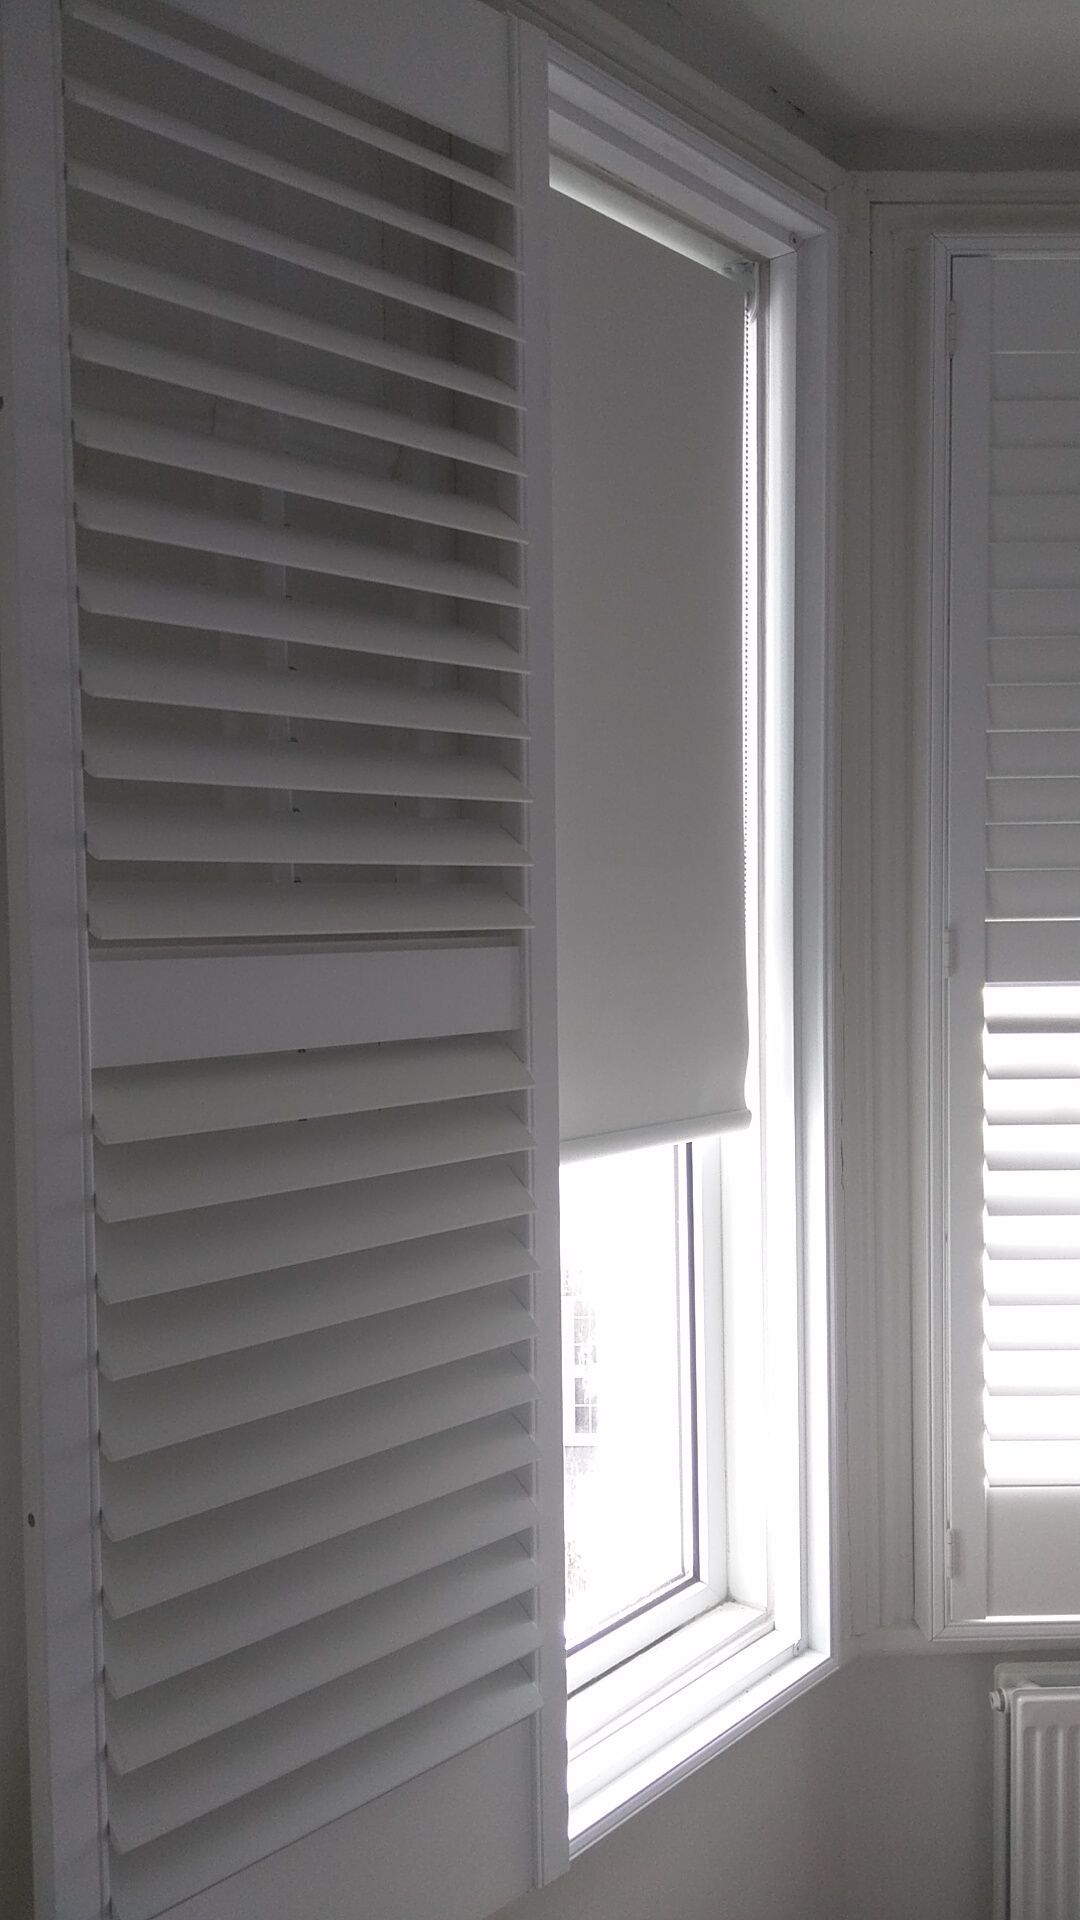 Kitchen window roman blinds  blackout roller blinds in polar colour which we fitted to bedroom